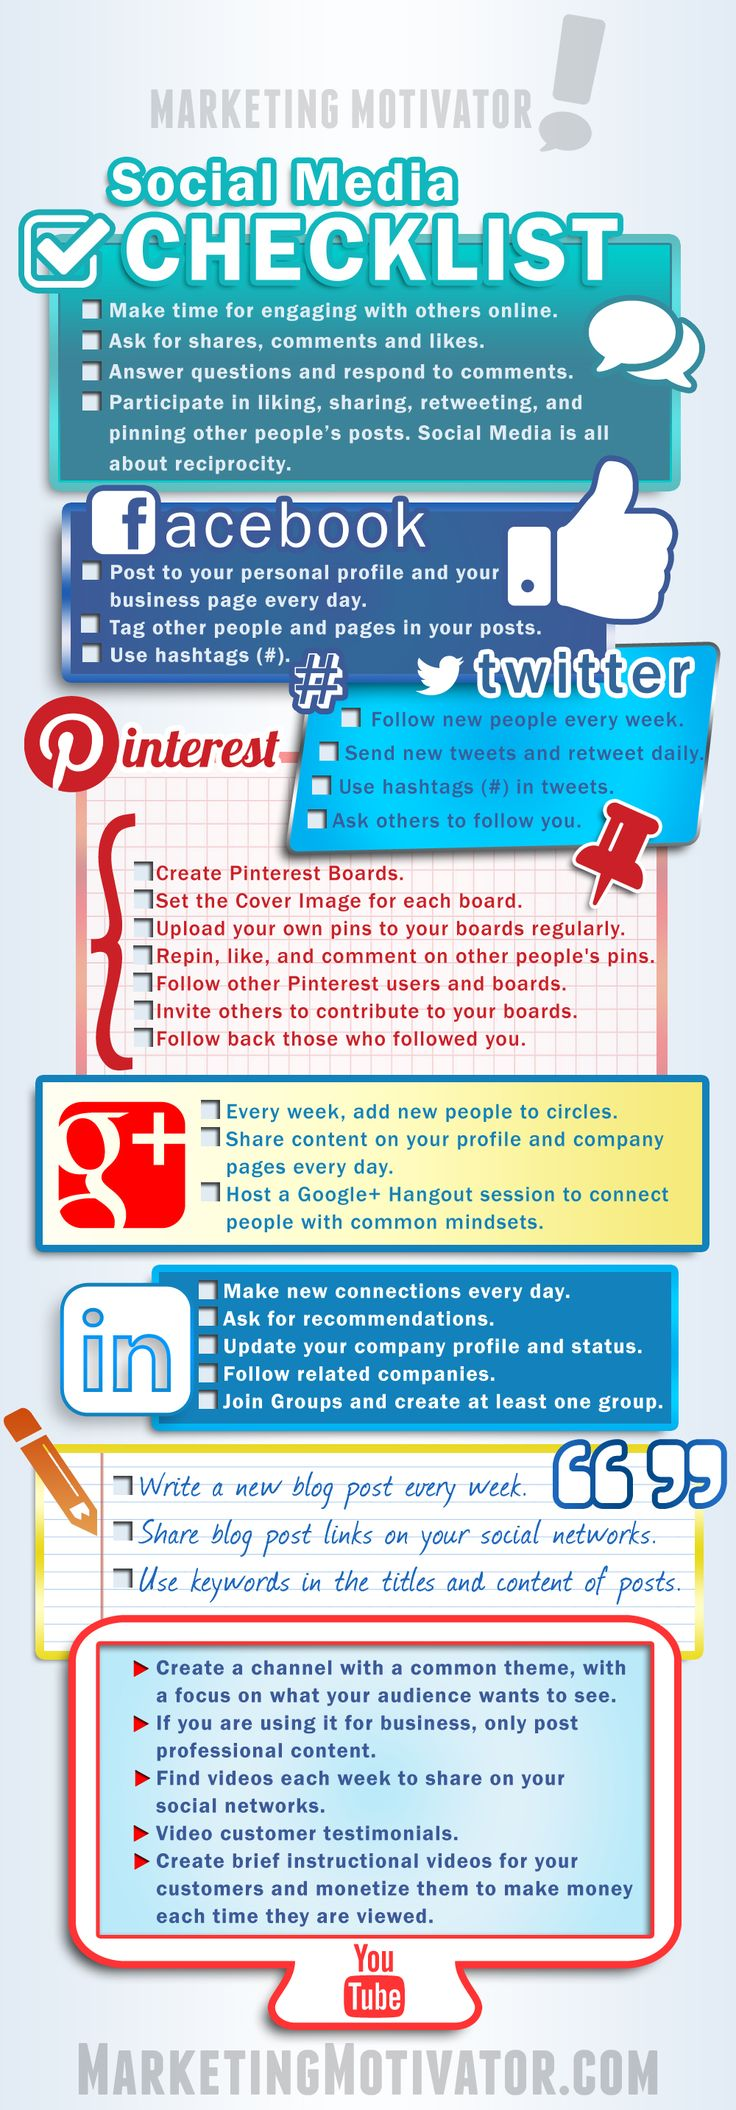 Social Media Checklist http://www.marketingmotivator.info/home/newest-products/21-social-media-checklist